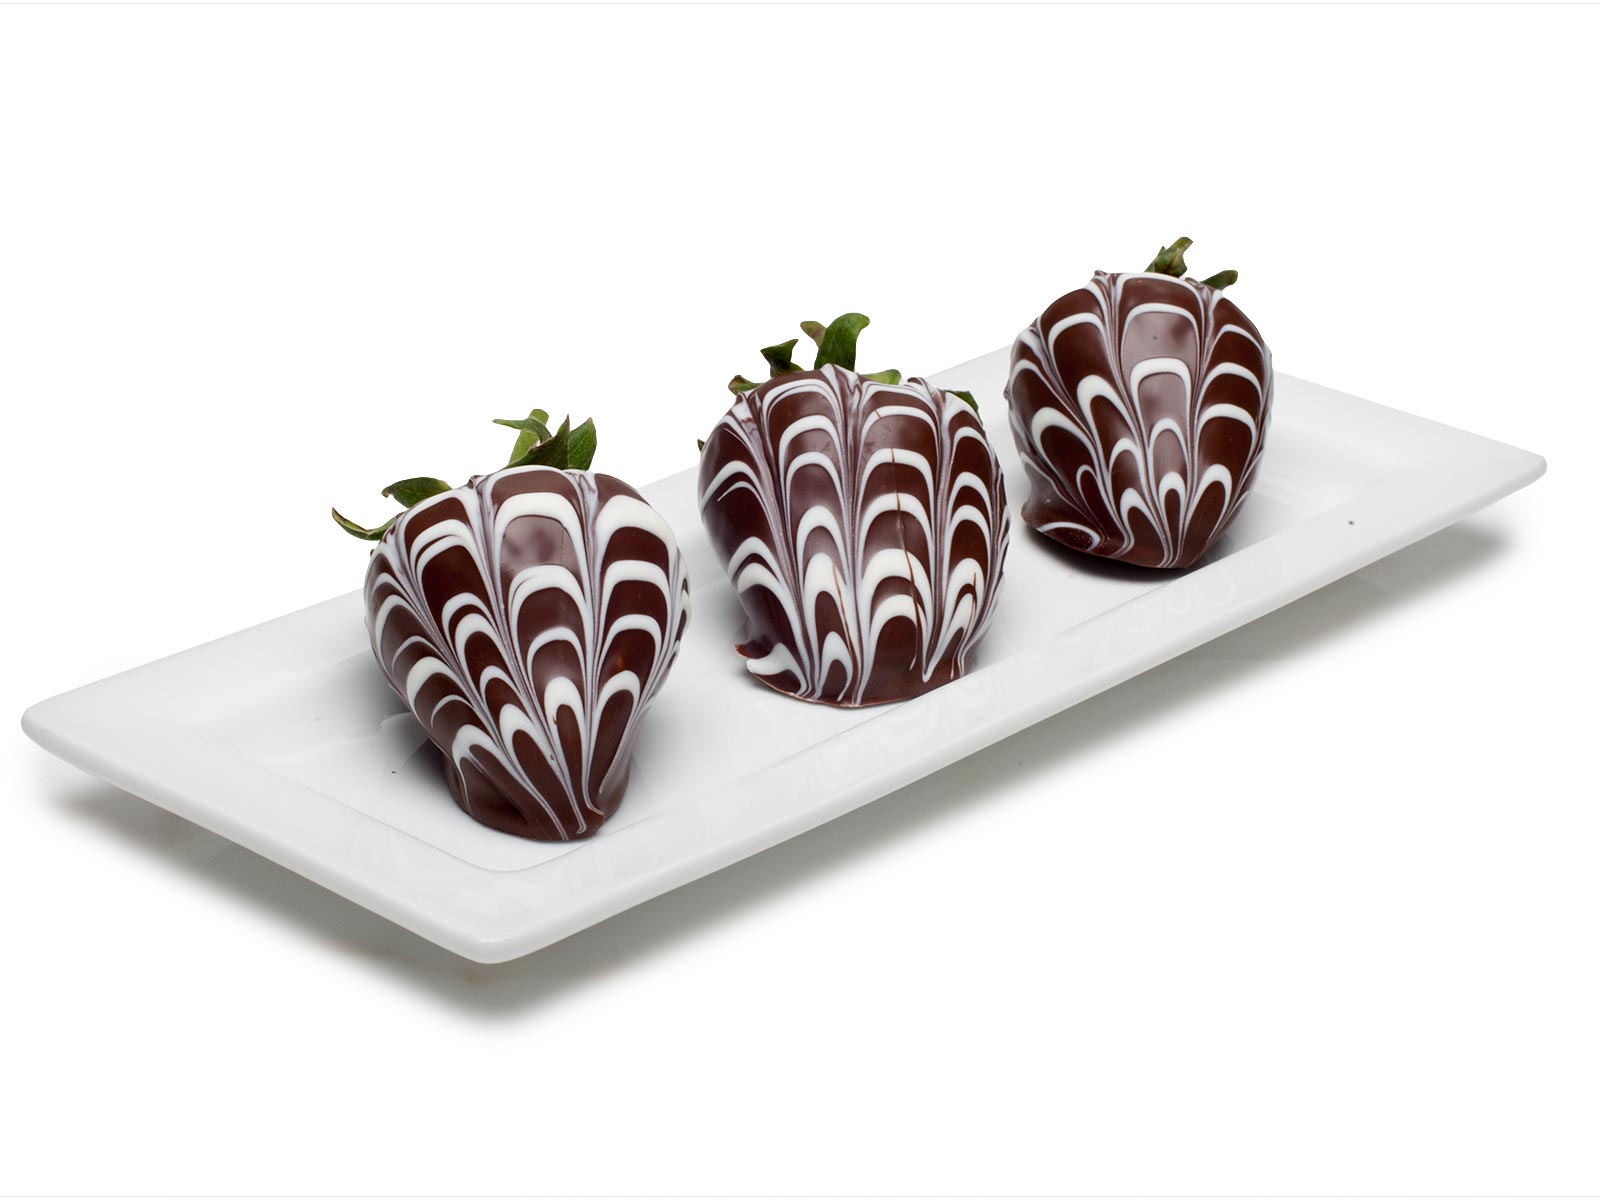 Chocolate Strawberries, Marbled Dark and White, 9 pc.